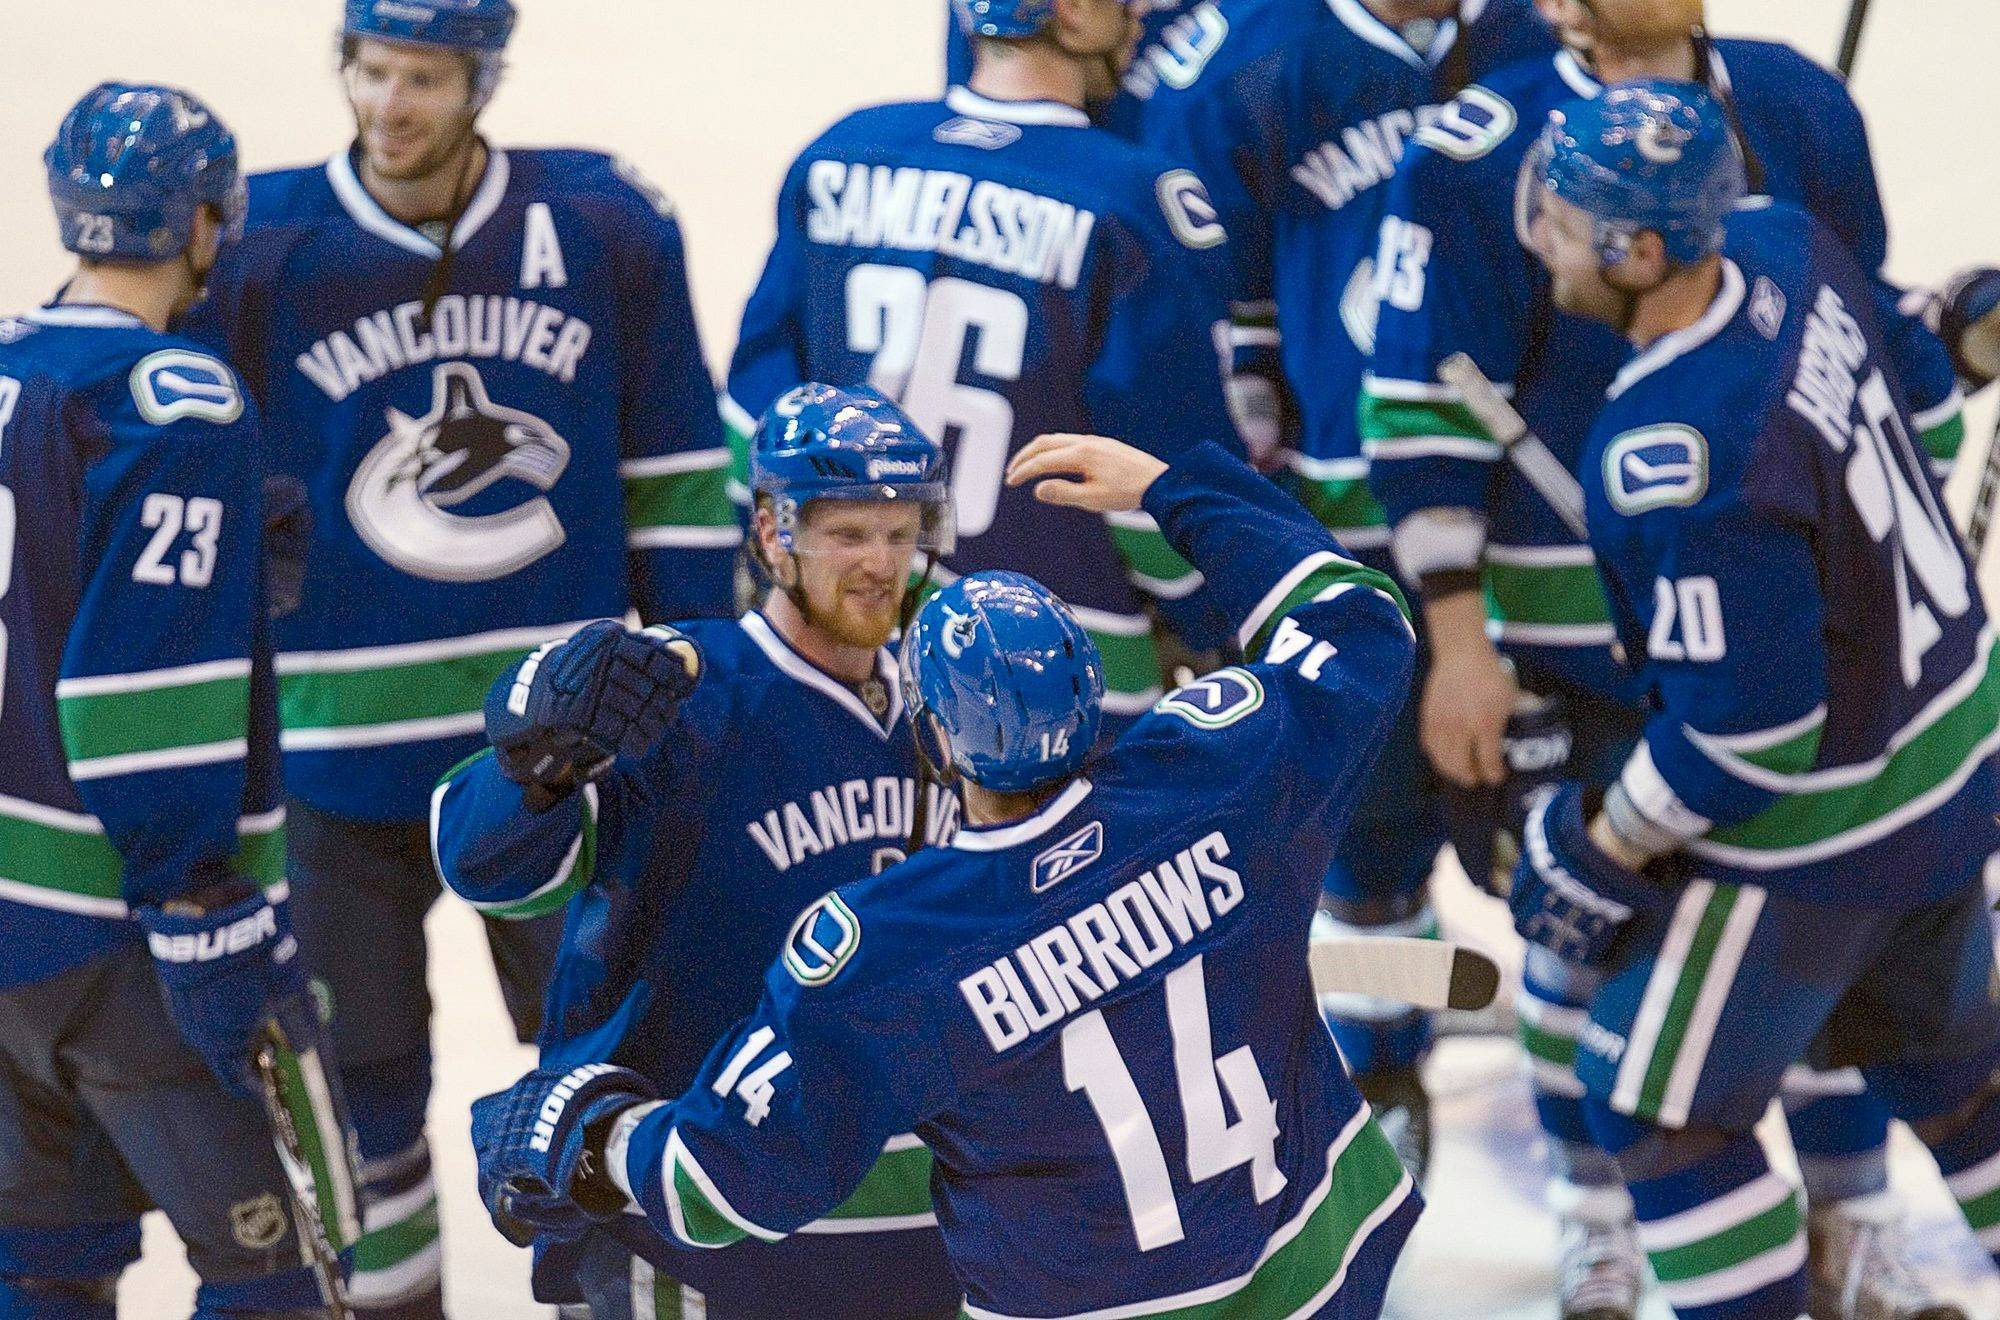 Vancouver Canucks' Alex Burrows celebrates his game winning goal with team captain Henrik Sedin against the Chicago Blackhawks in game 7 of the NHL Western Conference quarterfinal Stanley Cup playoff series Tuesday.